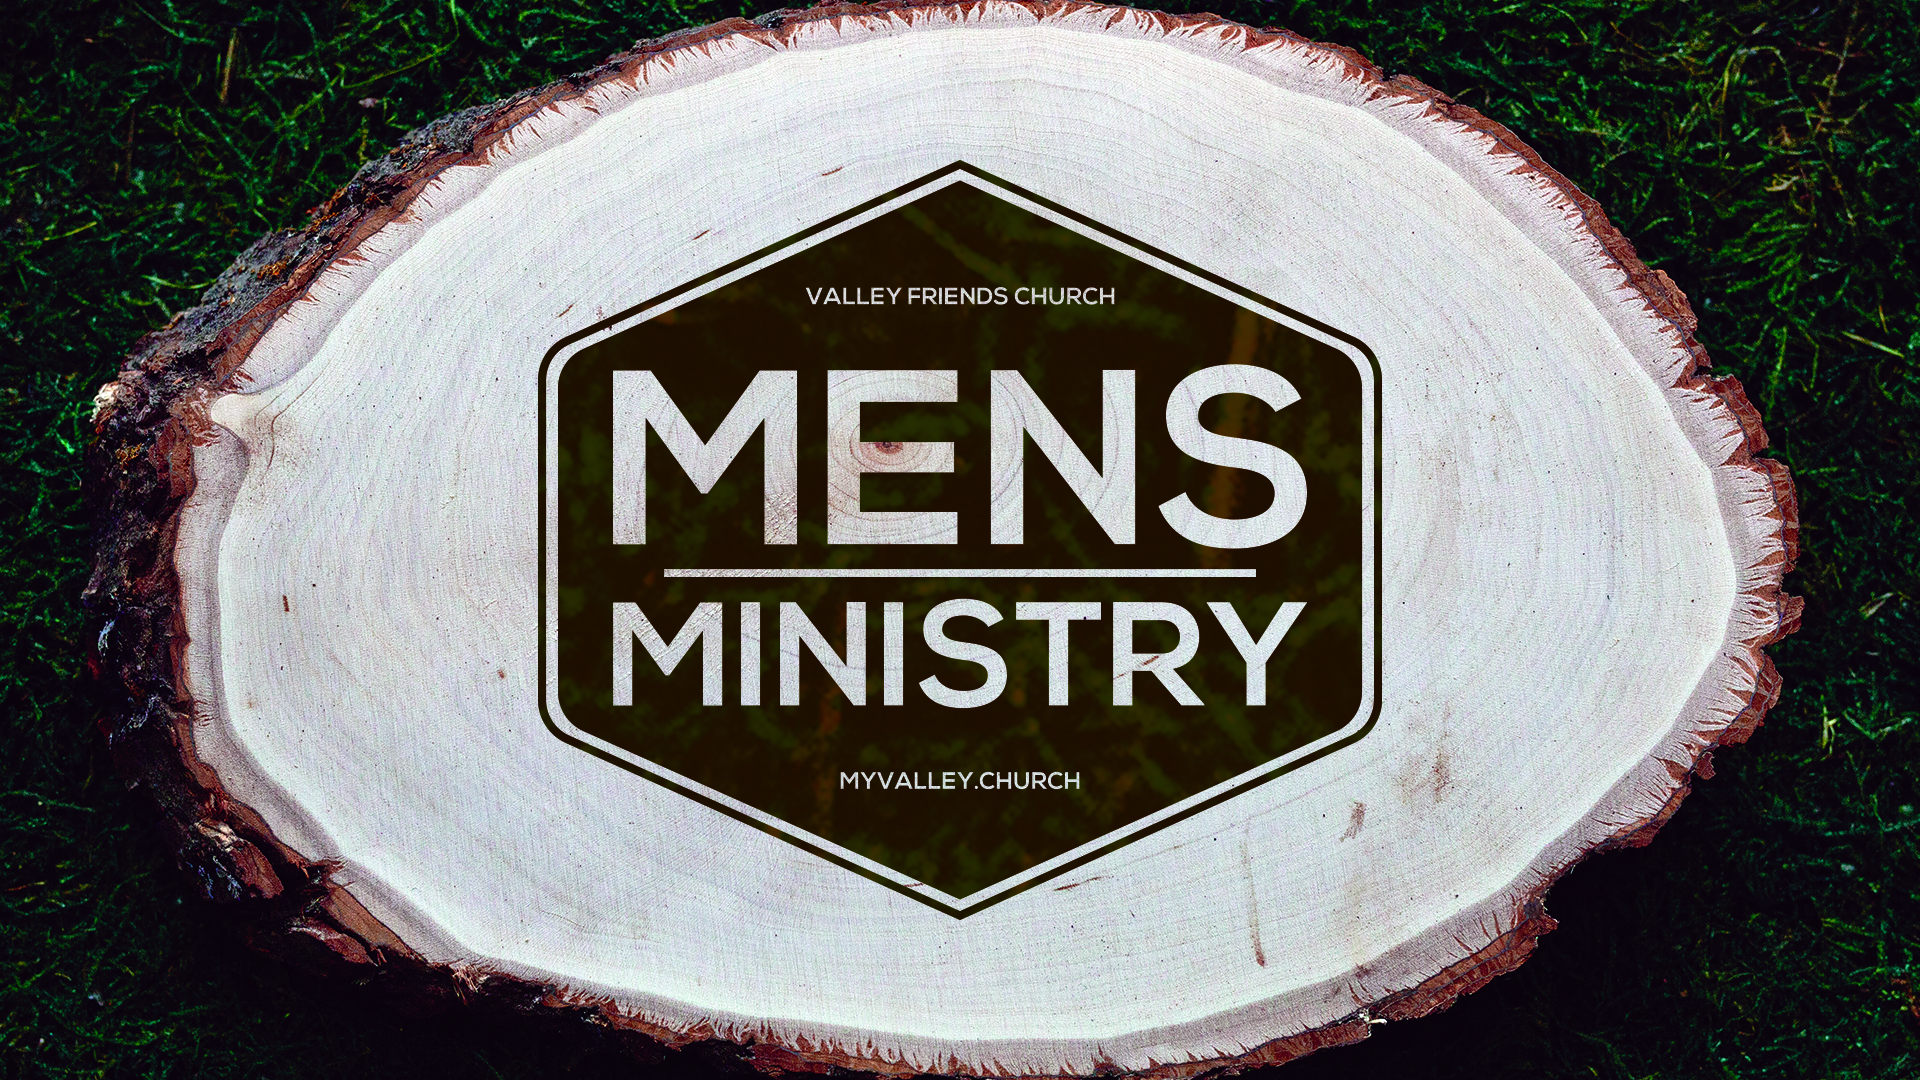 Valley Men is our Men's Ministry, led by men who's desire is to see that all men understand and live into their identity as the Men that God has created them to be.